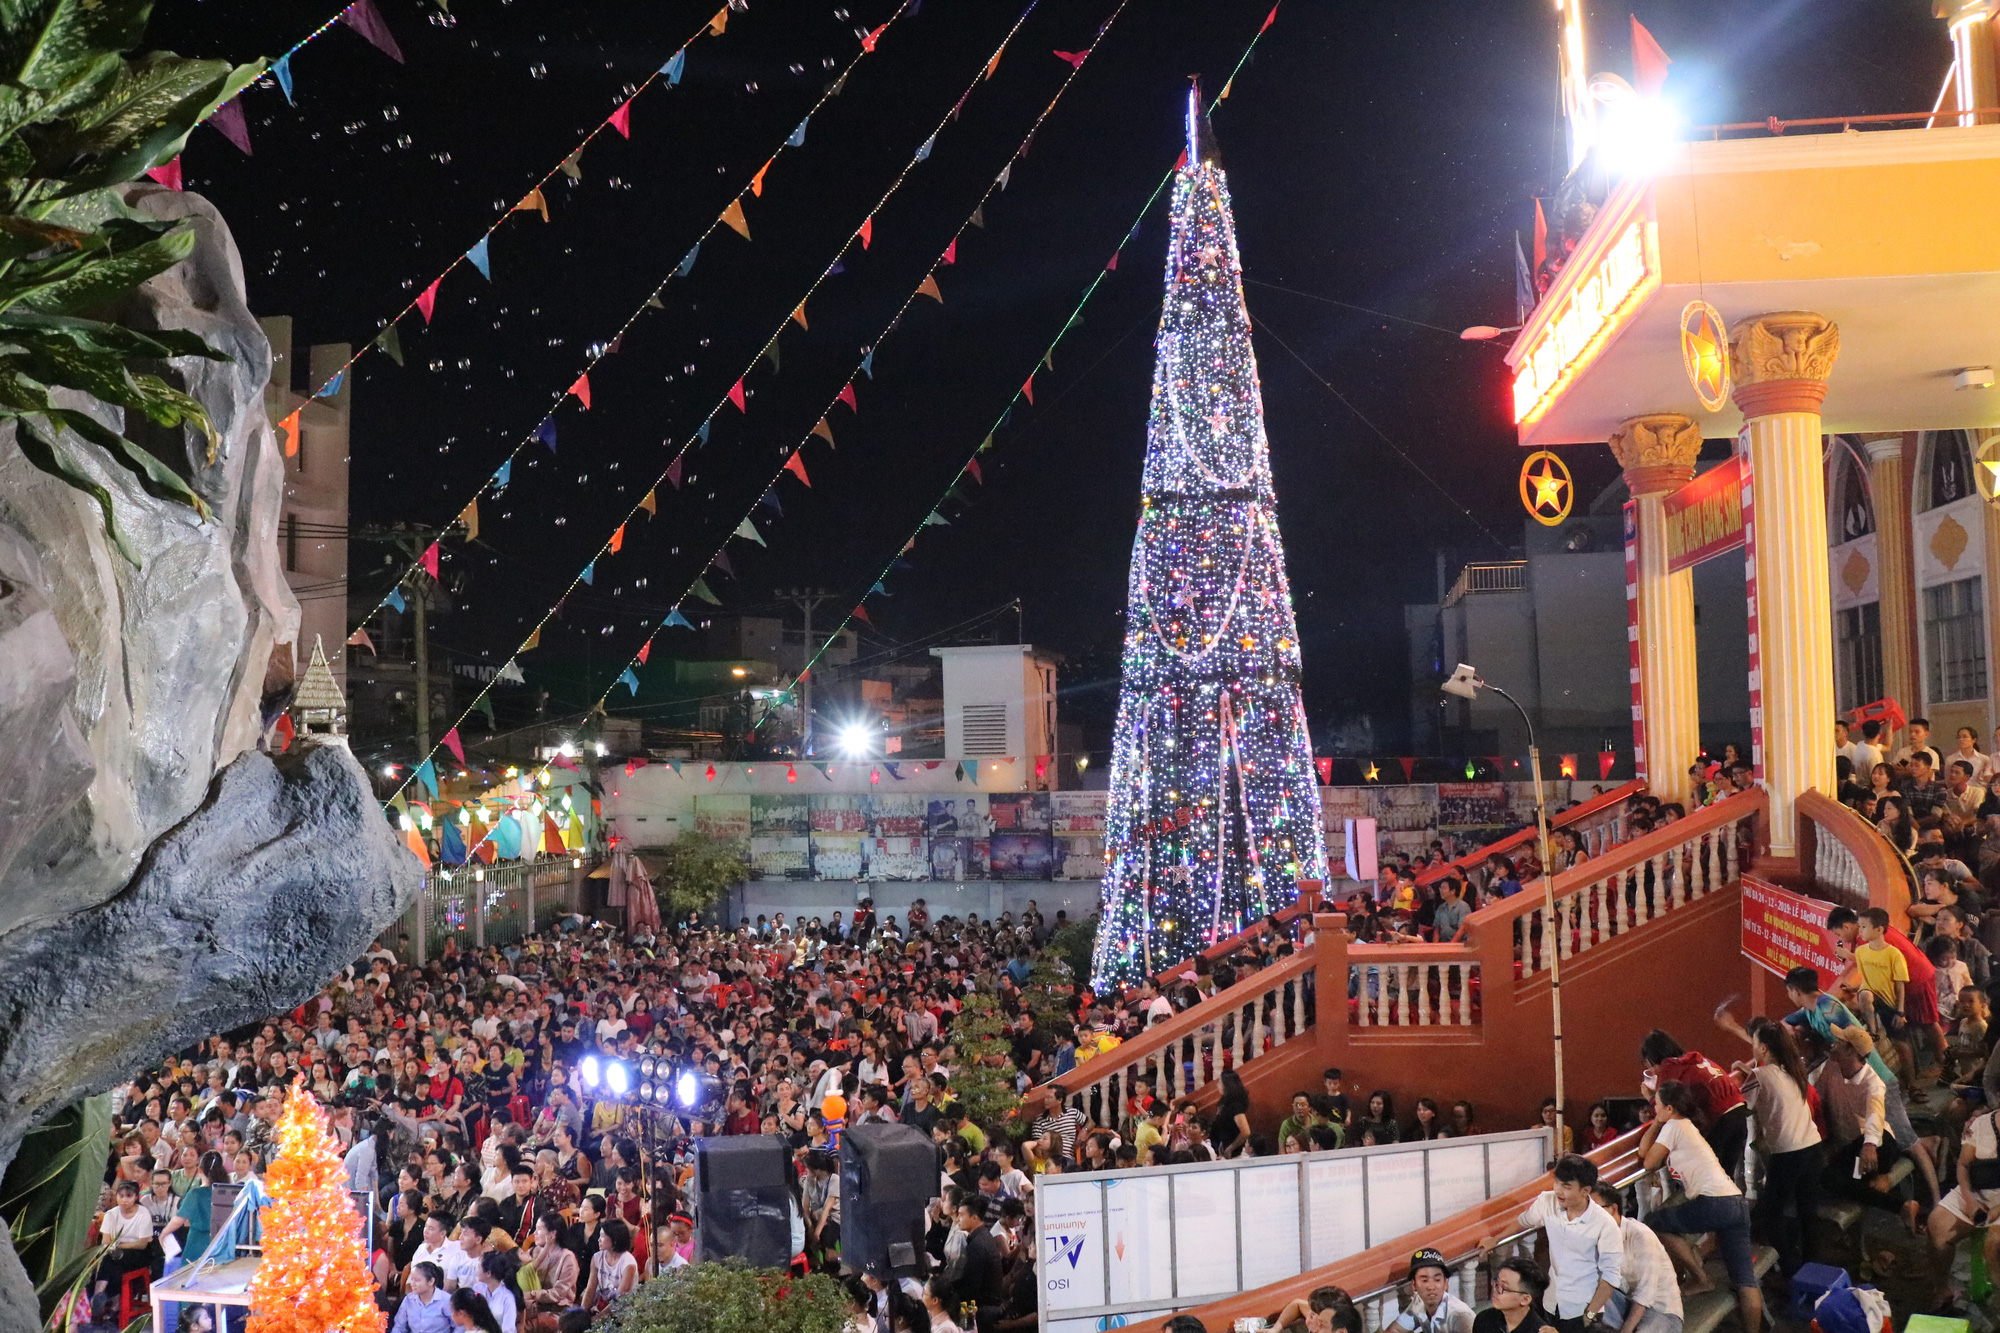 Ho Chi Minh City brightens with colorful Christmas decorations